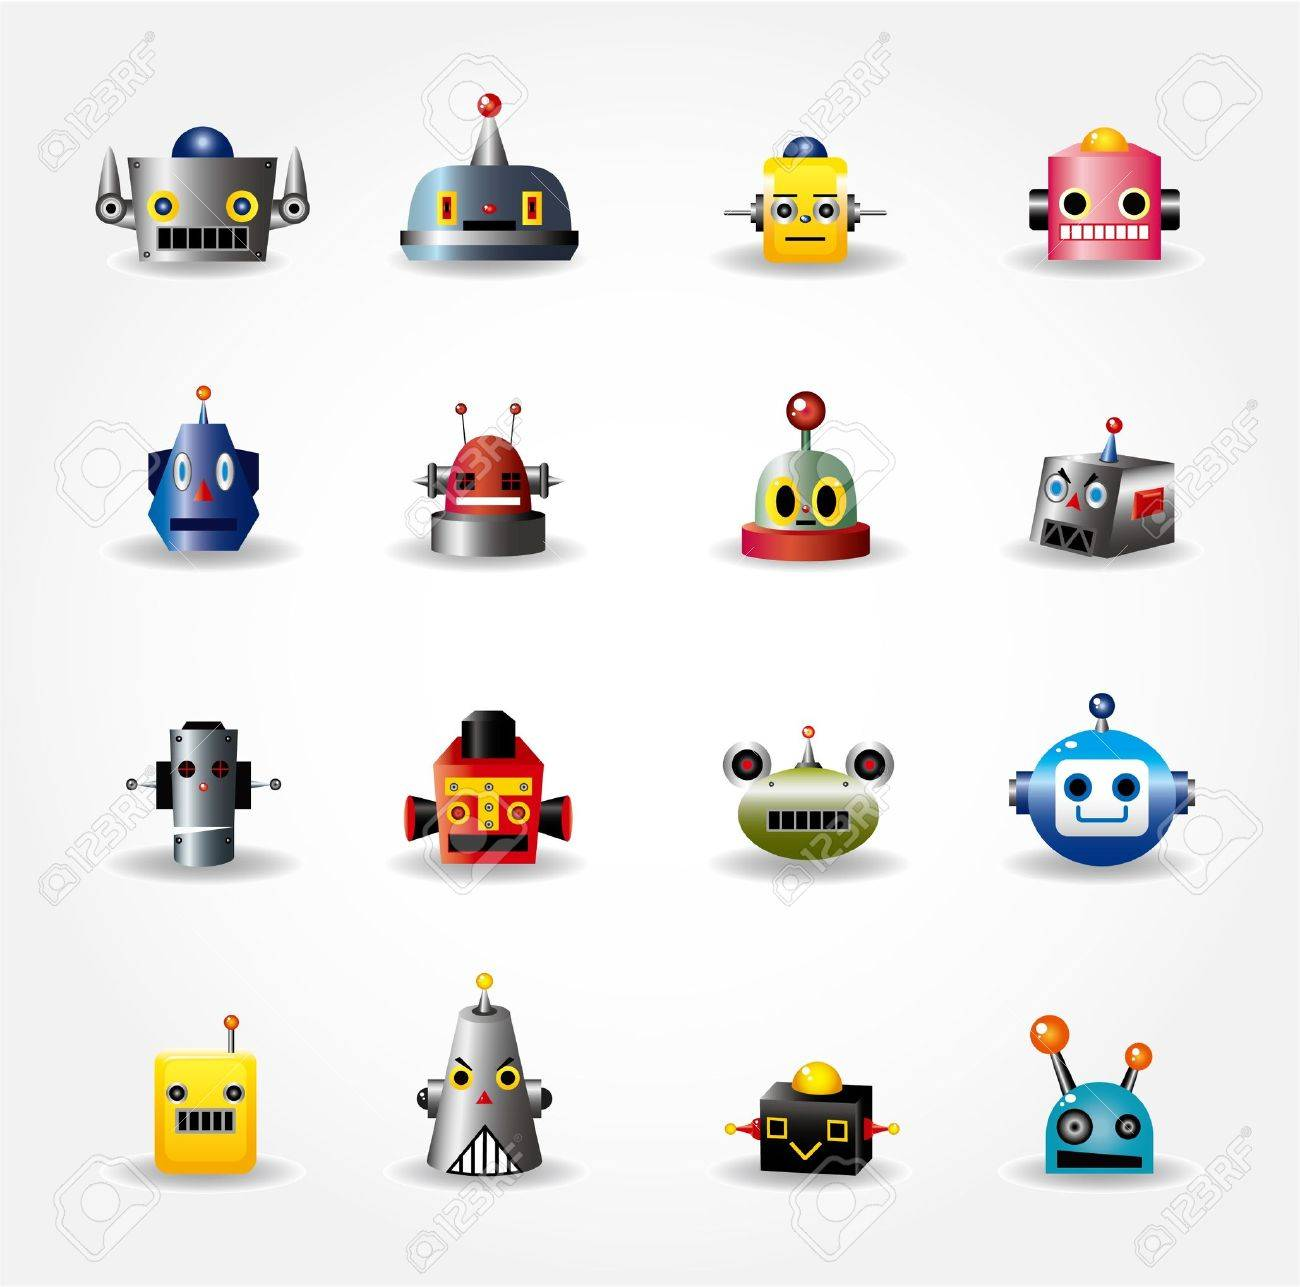 cartoon robot face icon , web icon set Stock Vector - 9895453